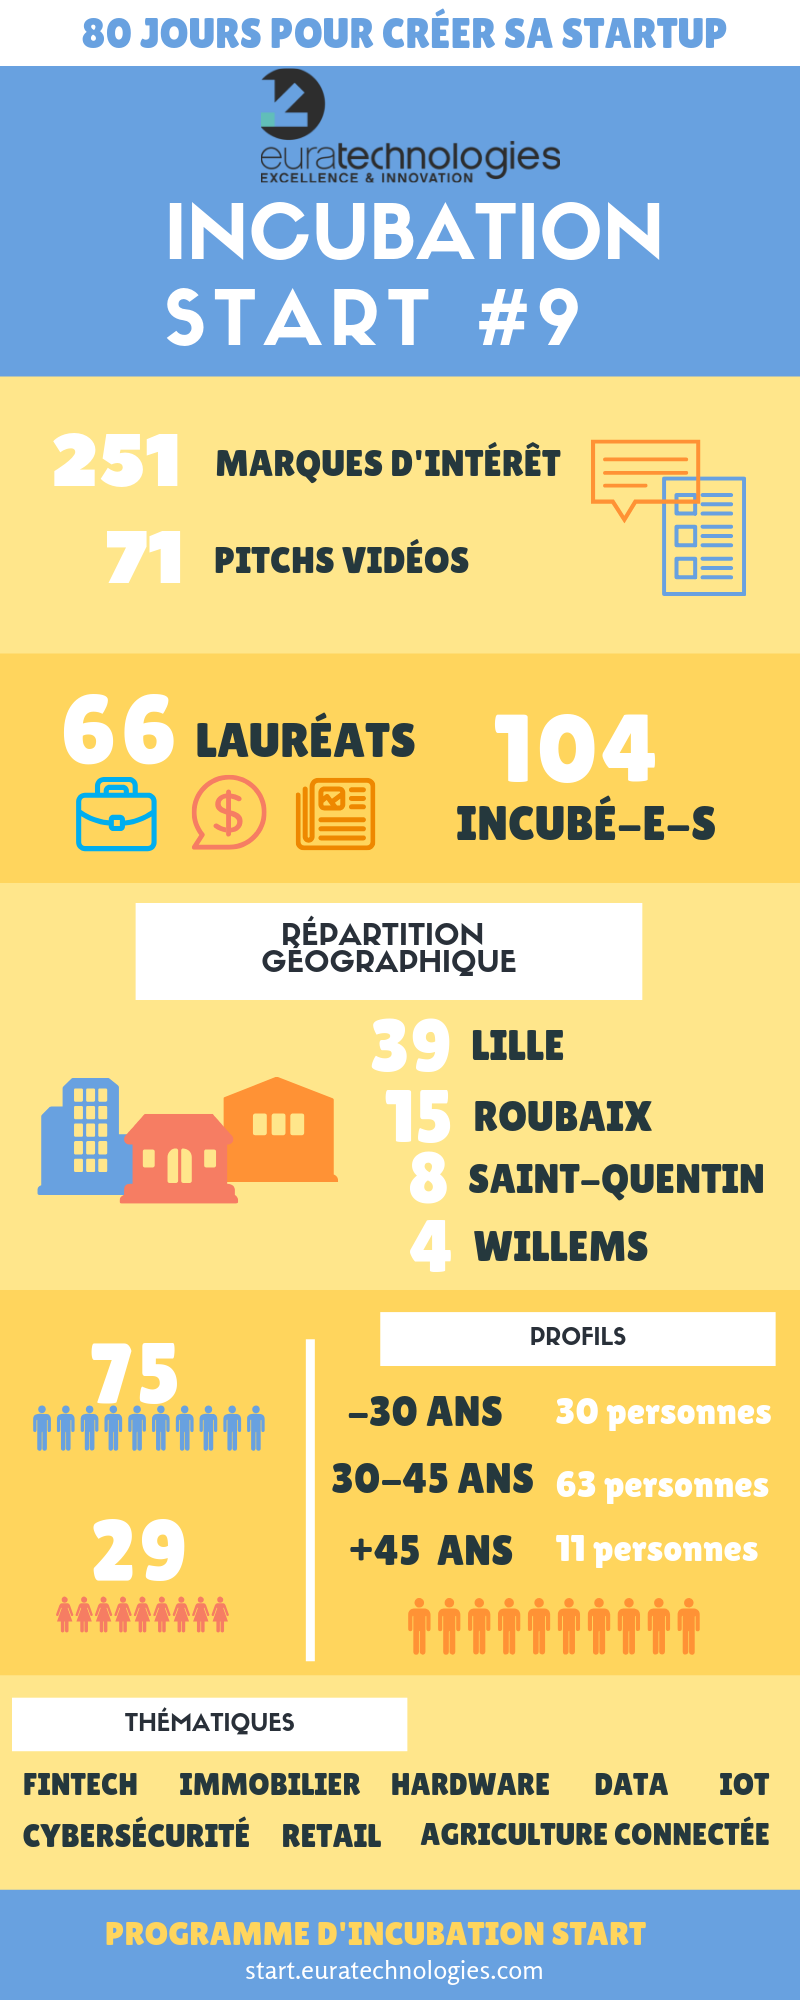 incubateur euratechnologies lille roubaix saint quentin willems start 9